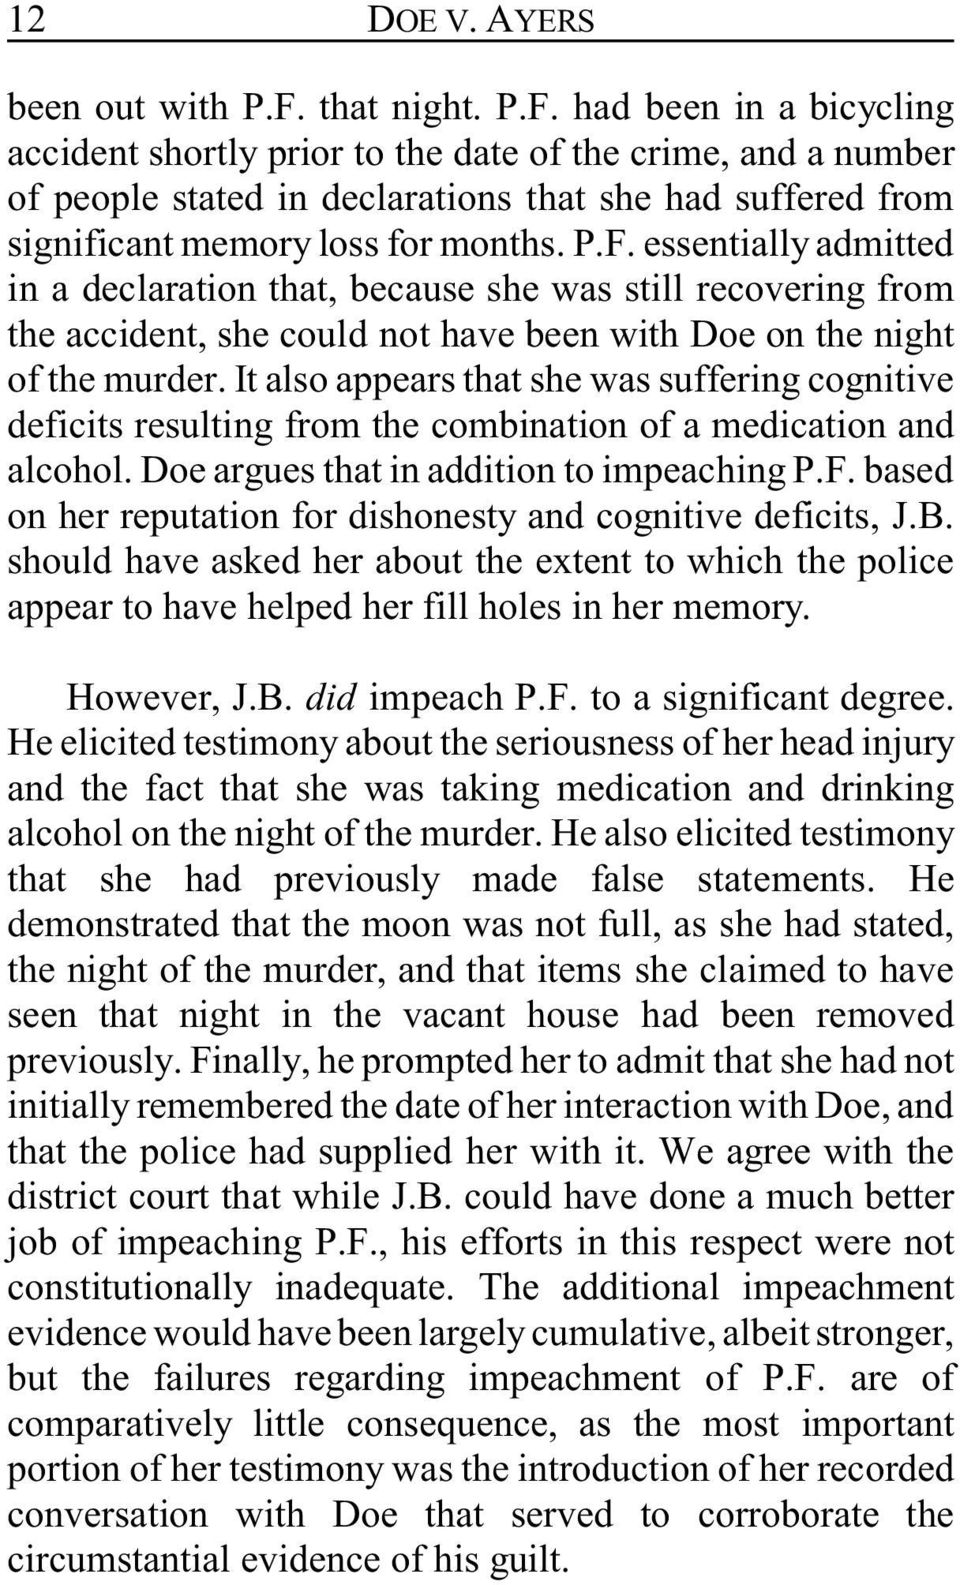 P.F. essentially admitted in a declaration that, because she was still recovering from the accident, she could not have been with Doe on the night of the murder.